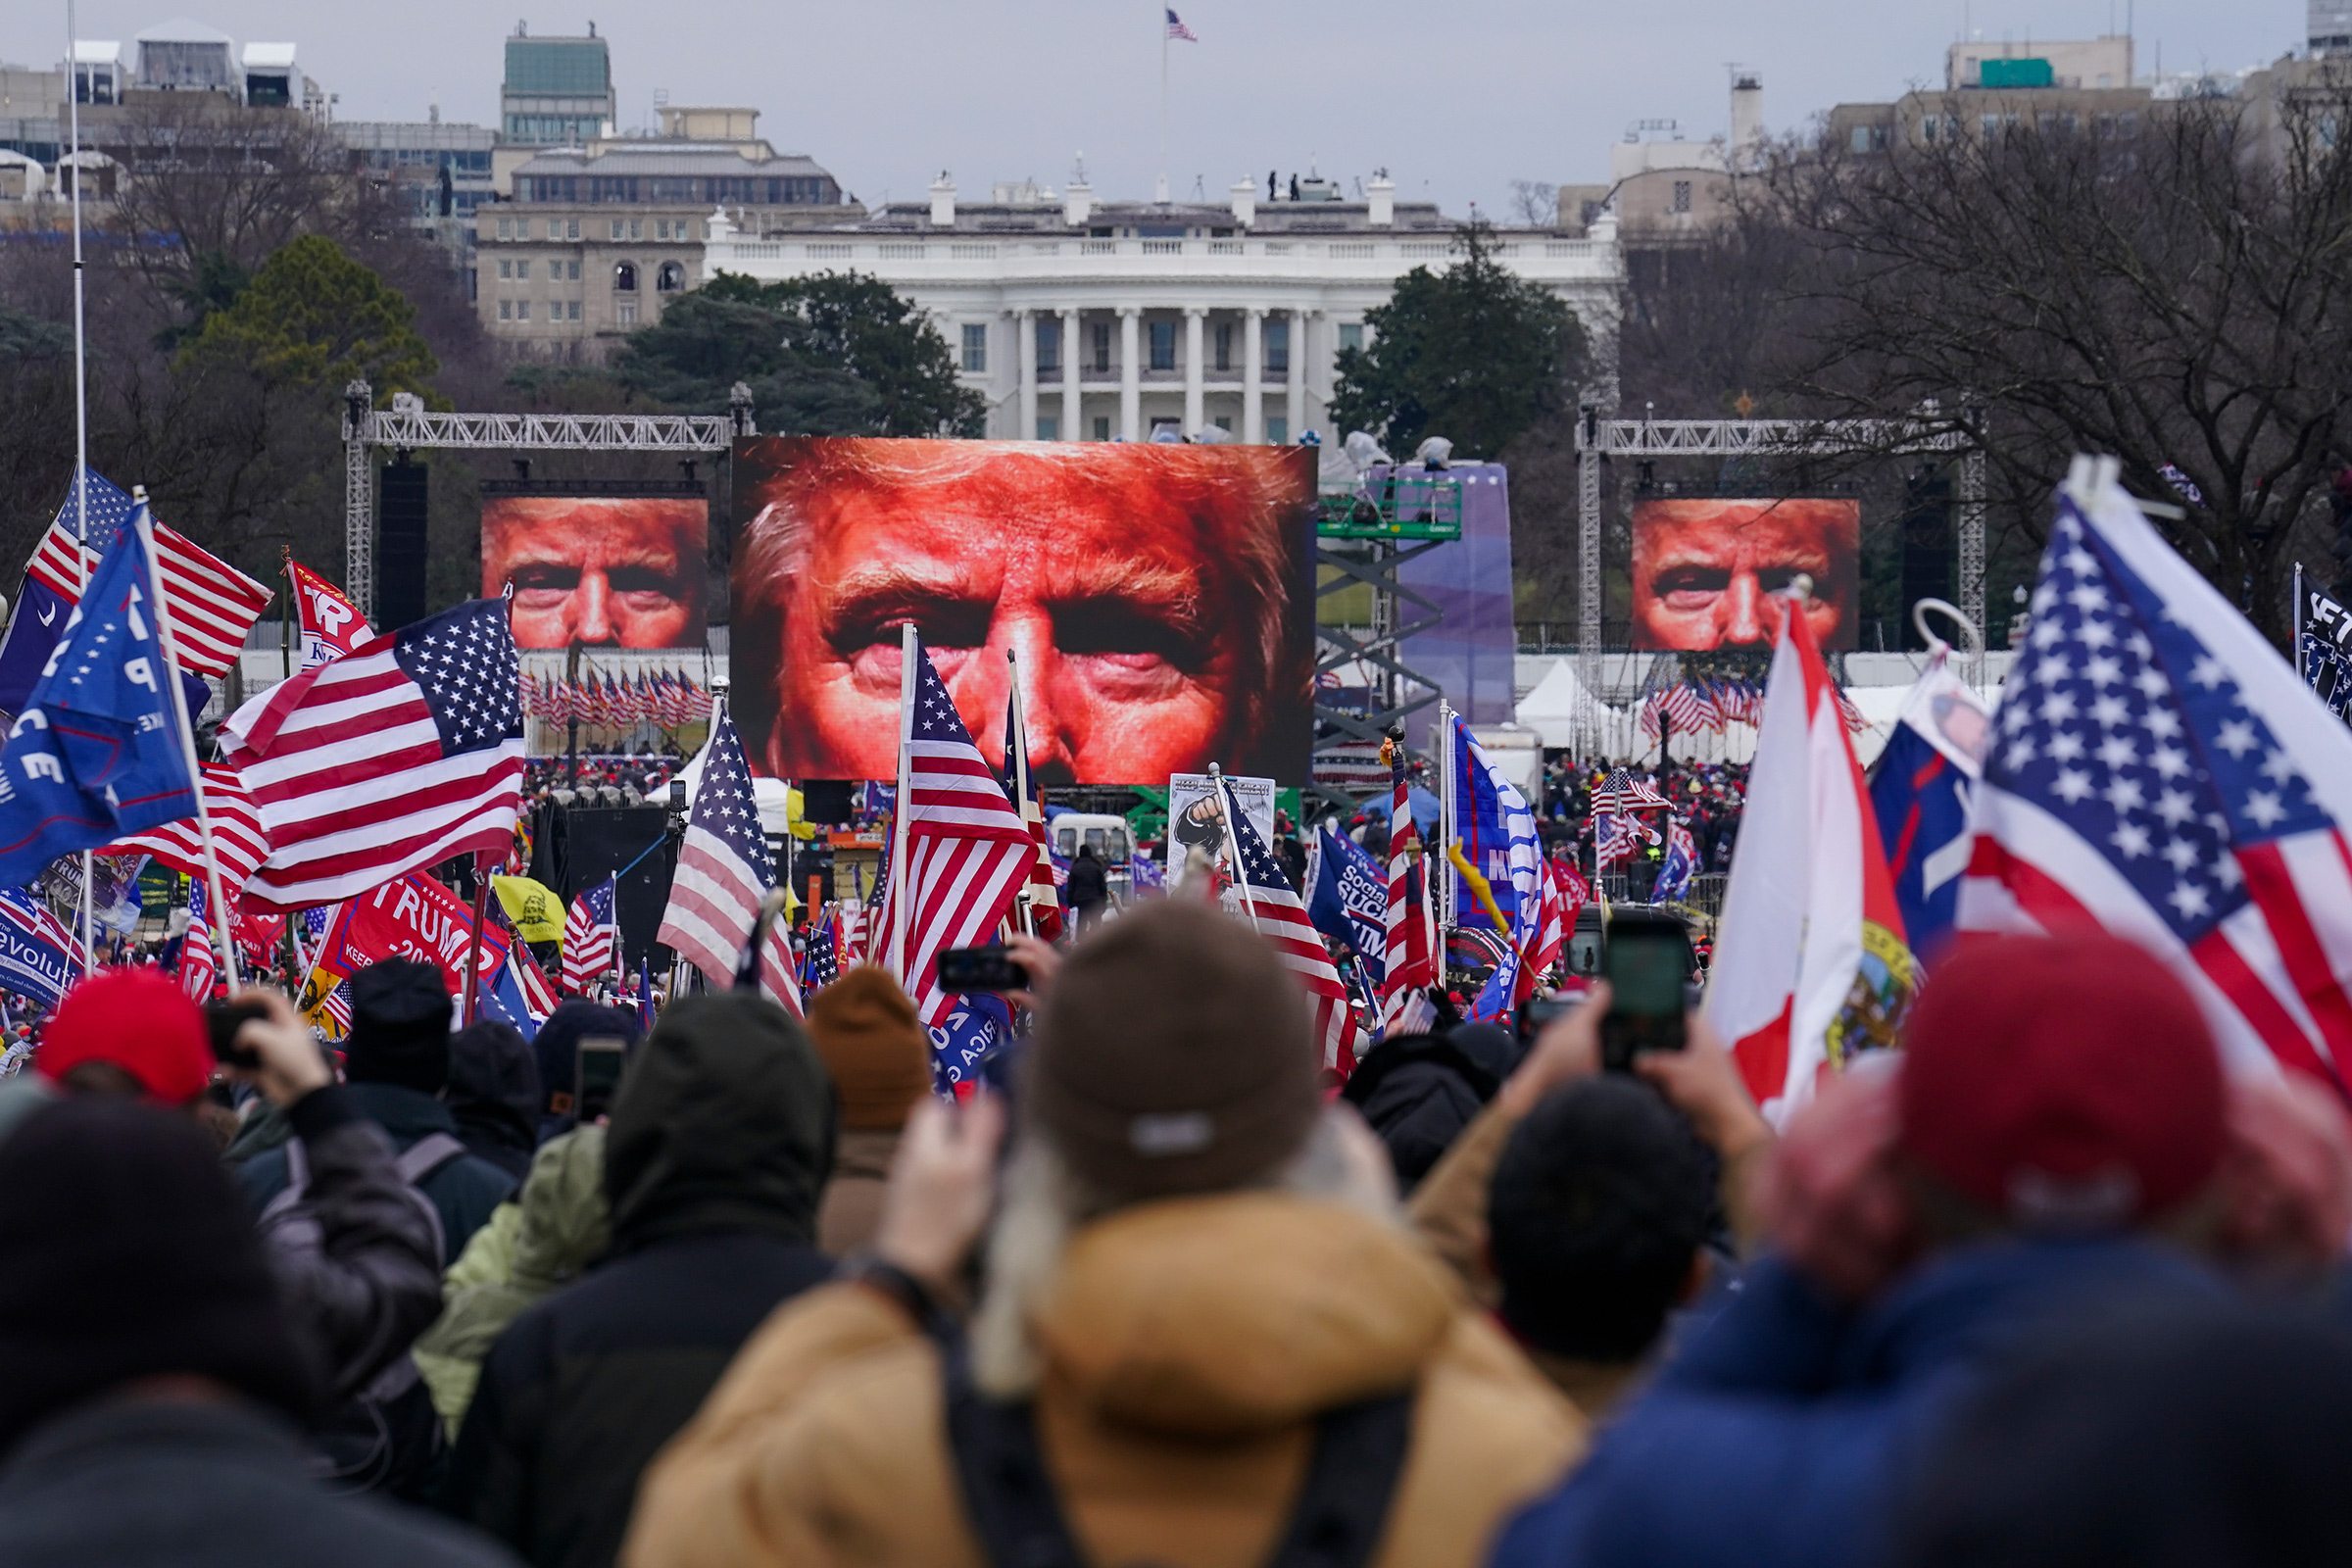 Trump supporters participate in a rally in Washington on Jan 6.